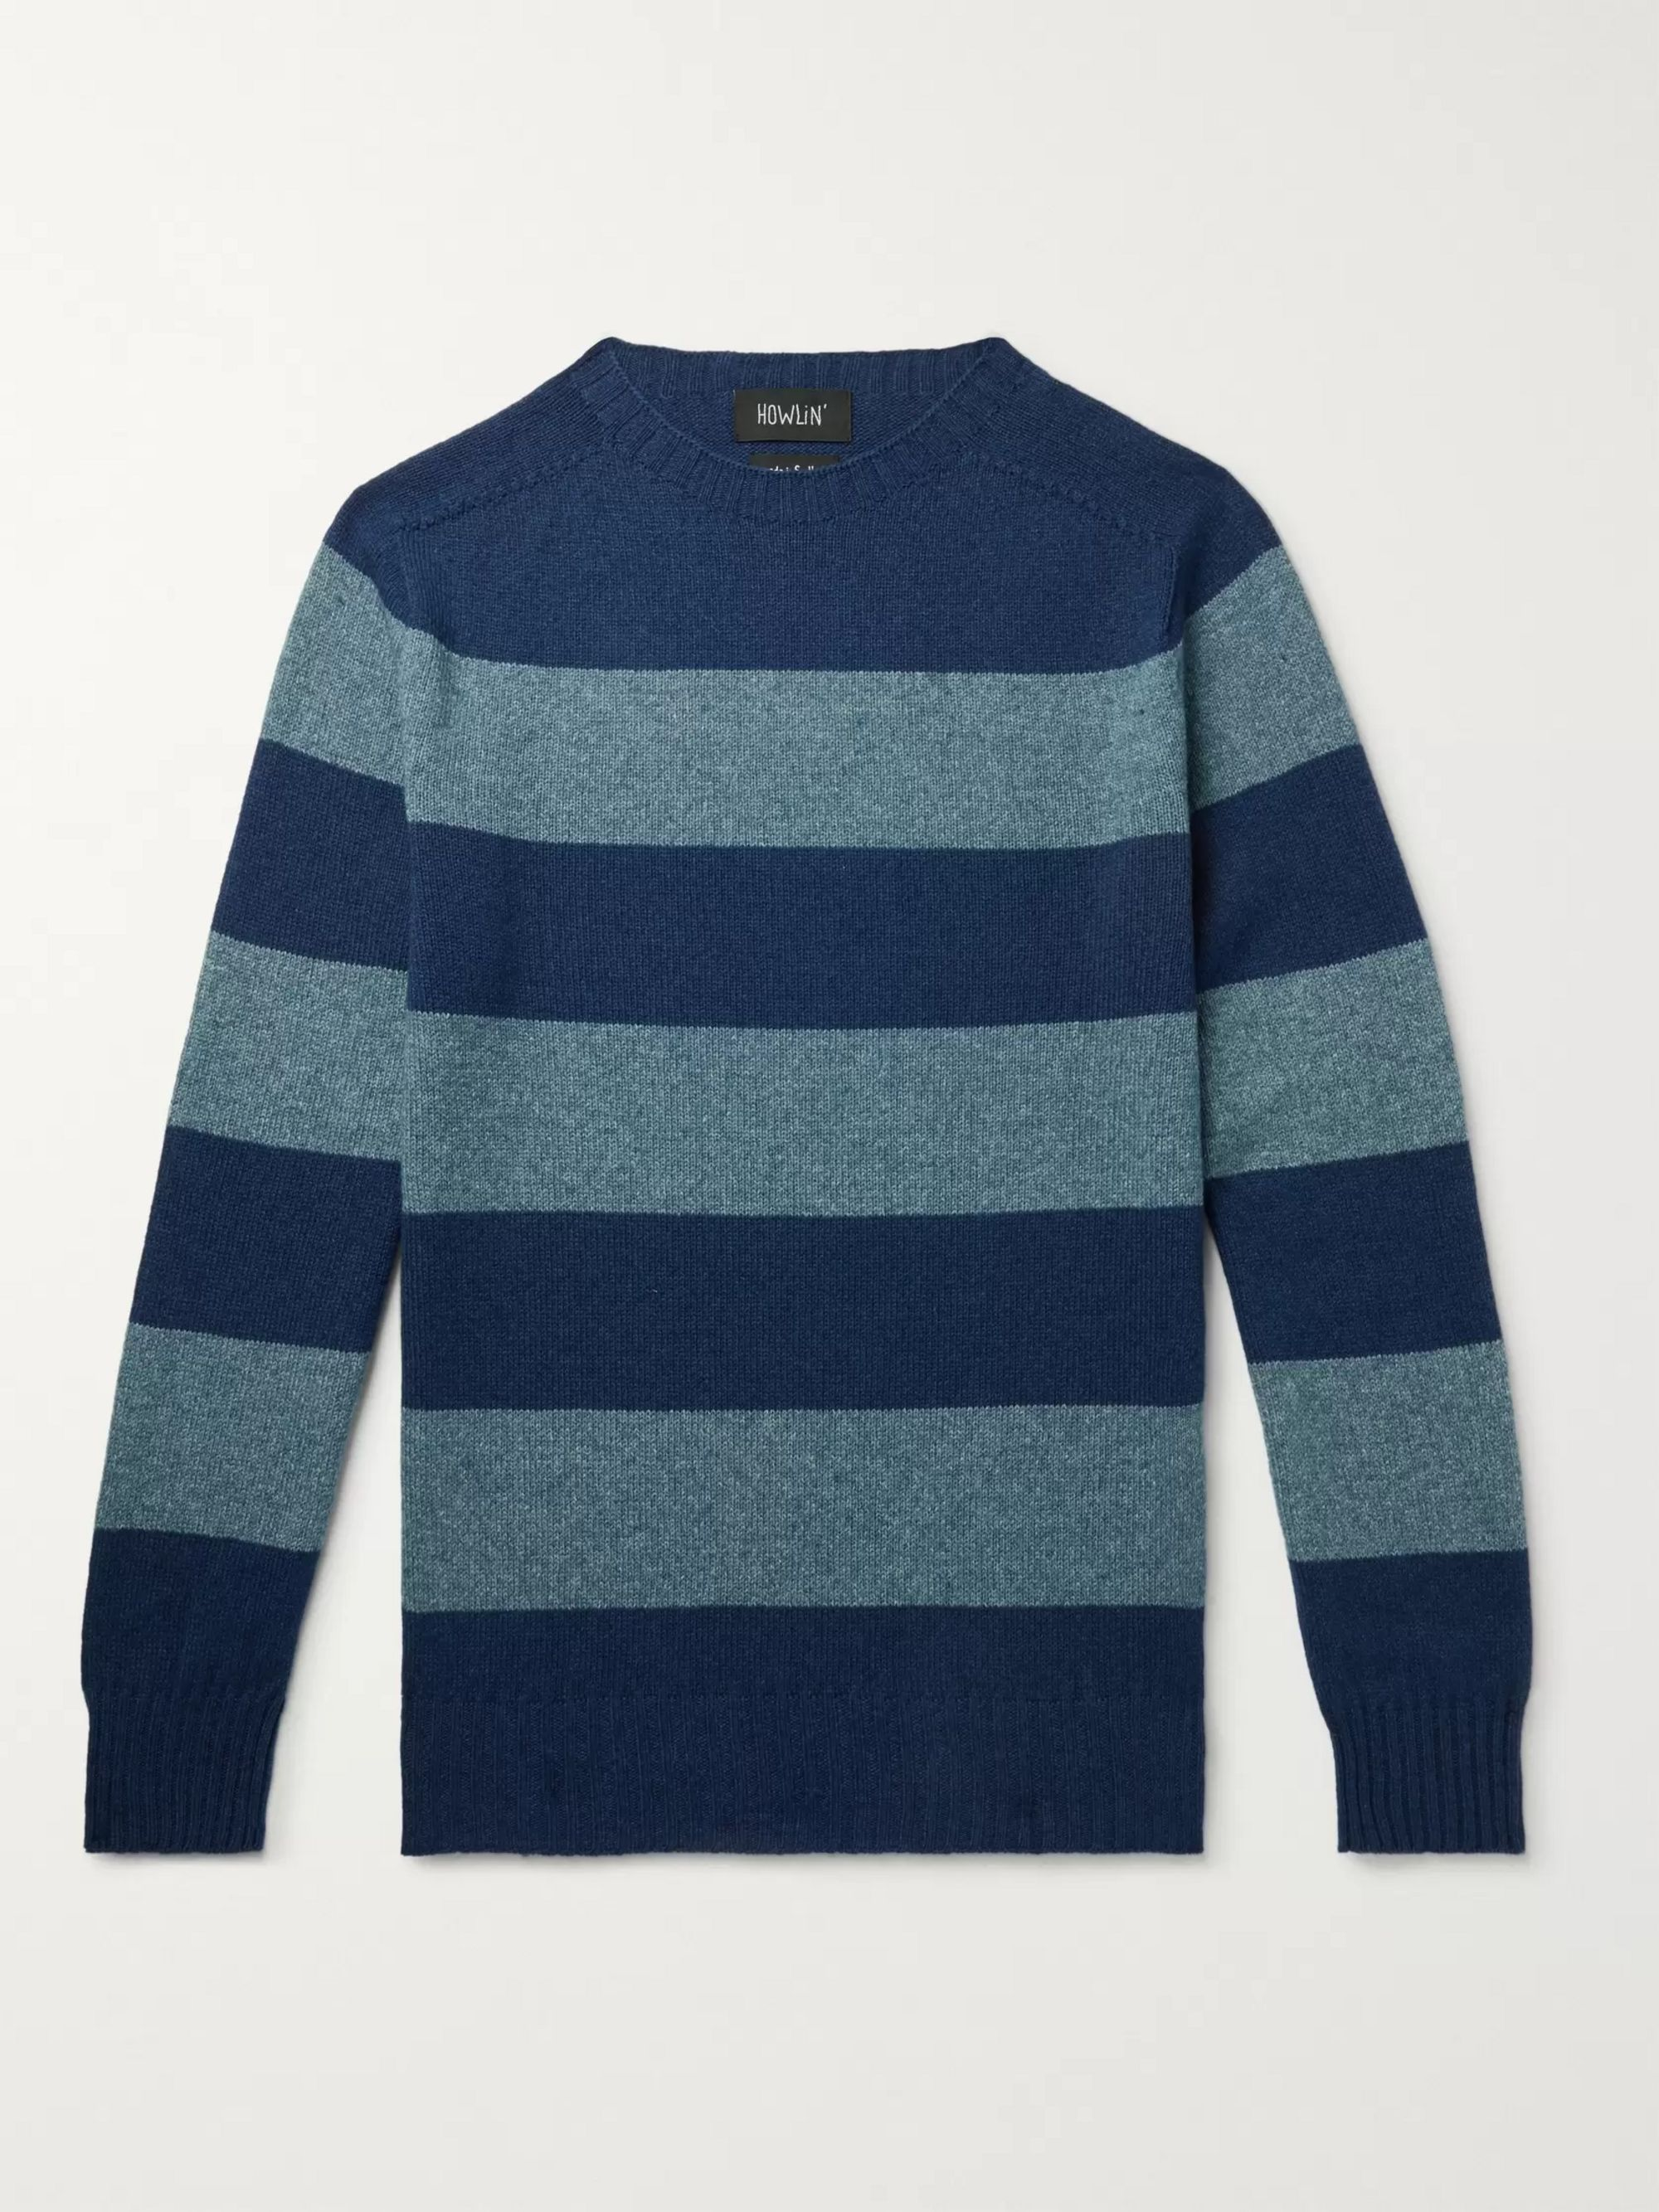 Howlin' Striped Wool and Cotton-Blend Sweater